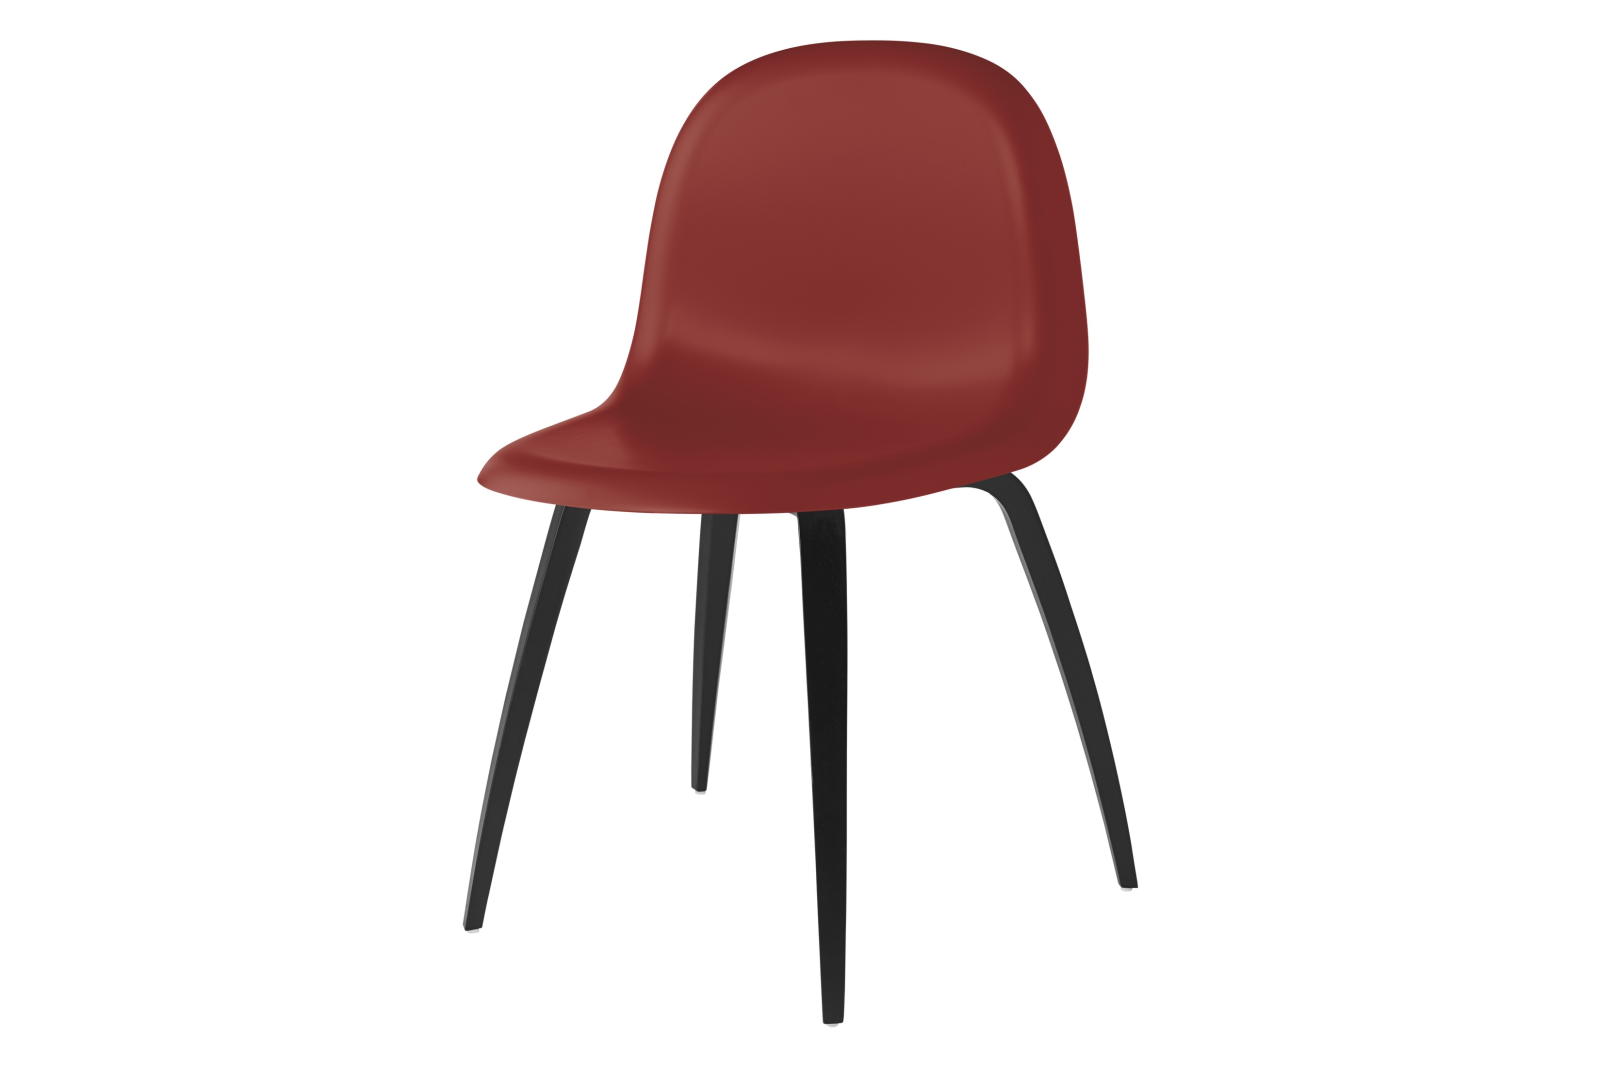 Gubi 3D Wood Base Dining Chair - Unupholstered Gubi HiRek Shy Cherry, Gubi Wood Black Stained Beech